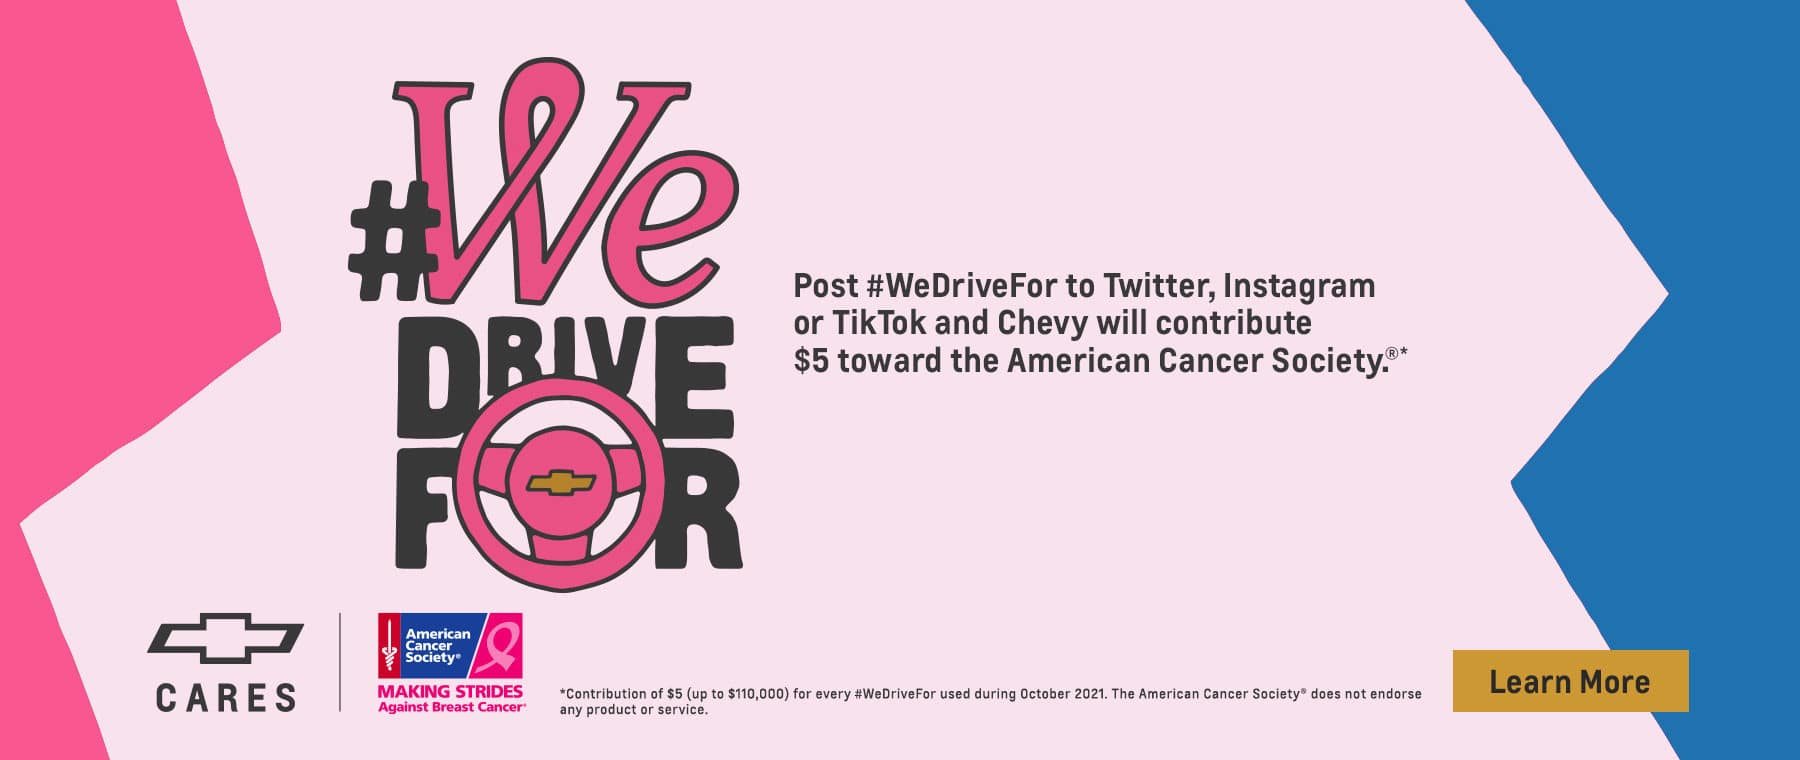 Post #WeDriveFor to Twitter, Instagram or TikTok and Chevy will contribute $5 toward the American Cancer Society